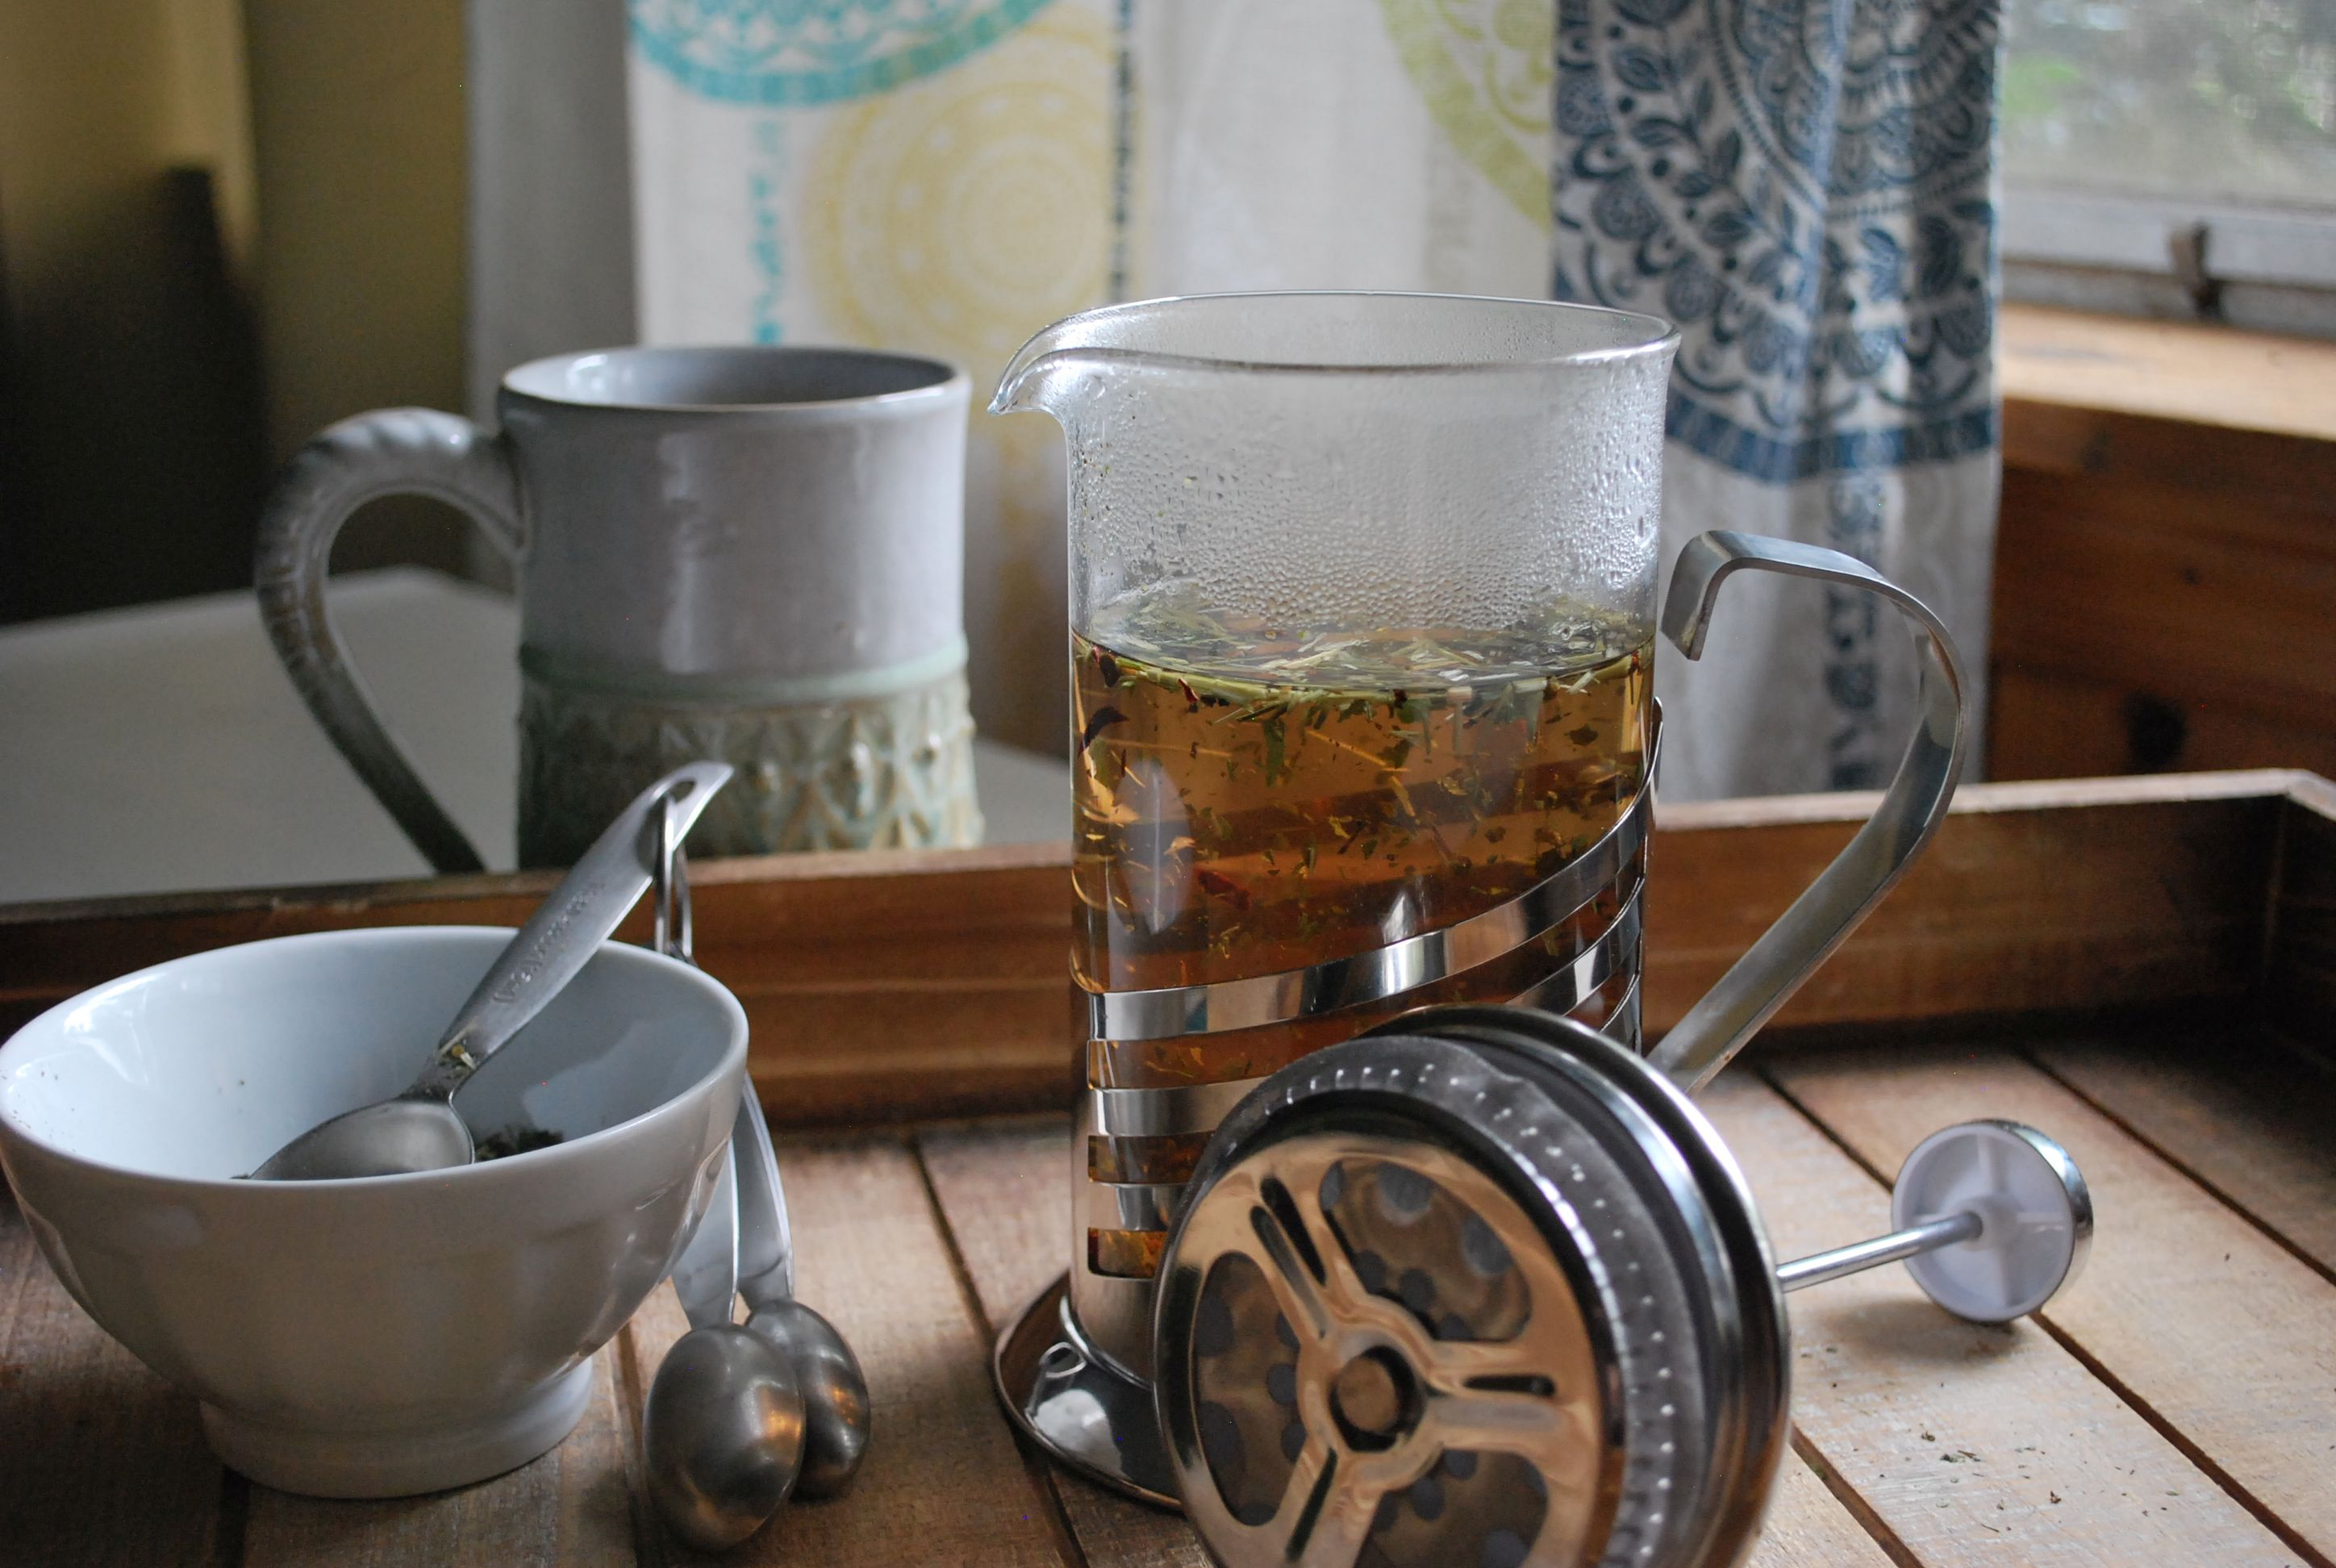 Using a French press to make herbal tea.